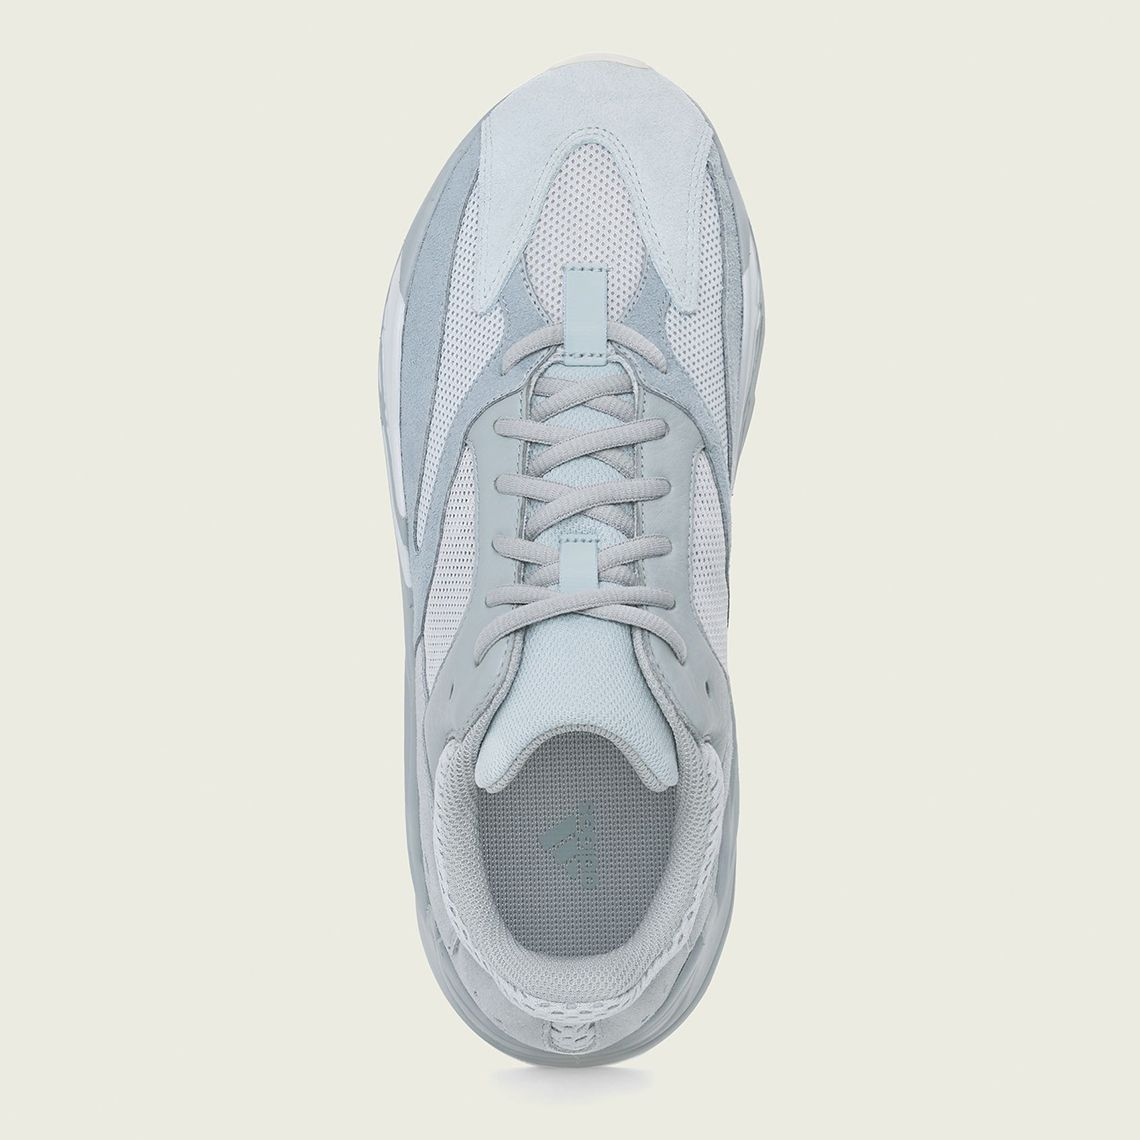 919dc9557718e The adidas Yeezy Boost 700 Inertia Releases On March 9th